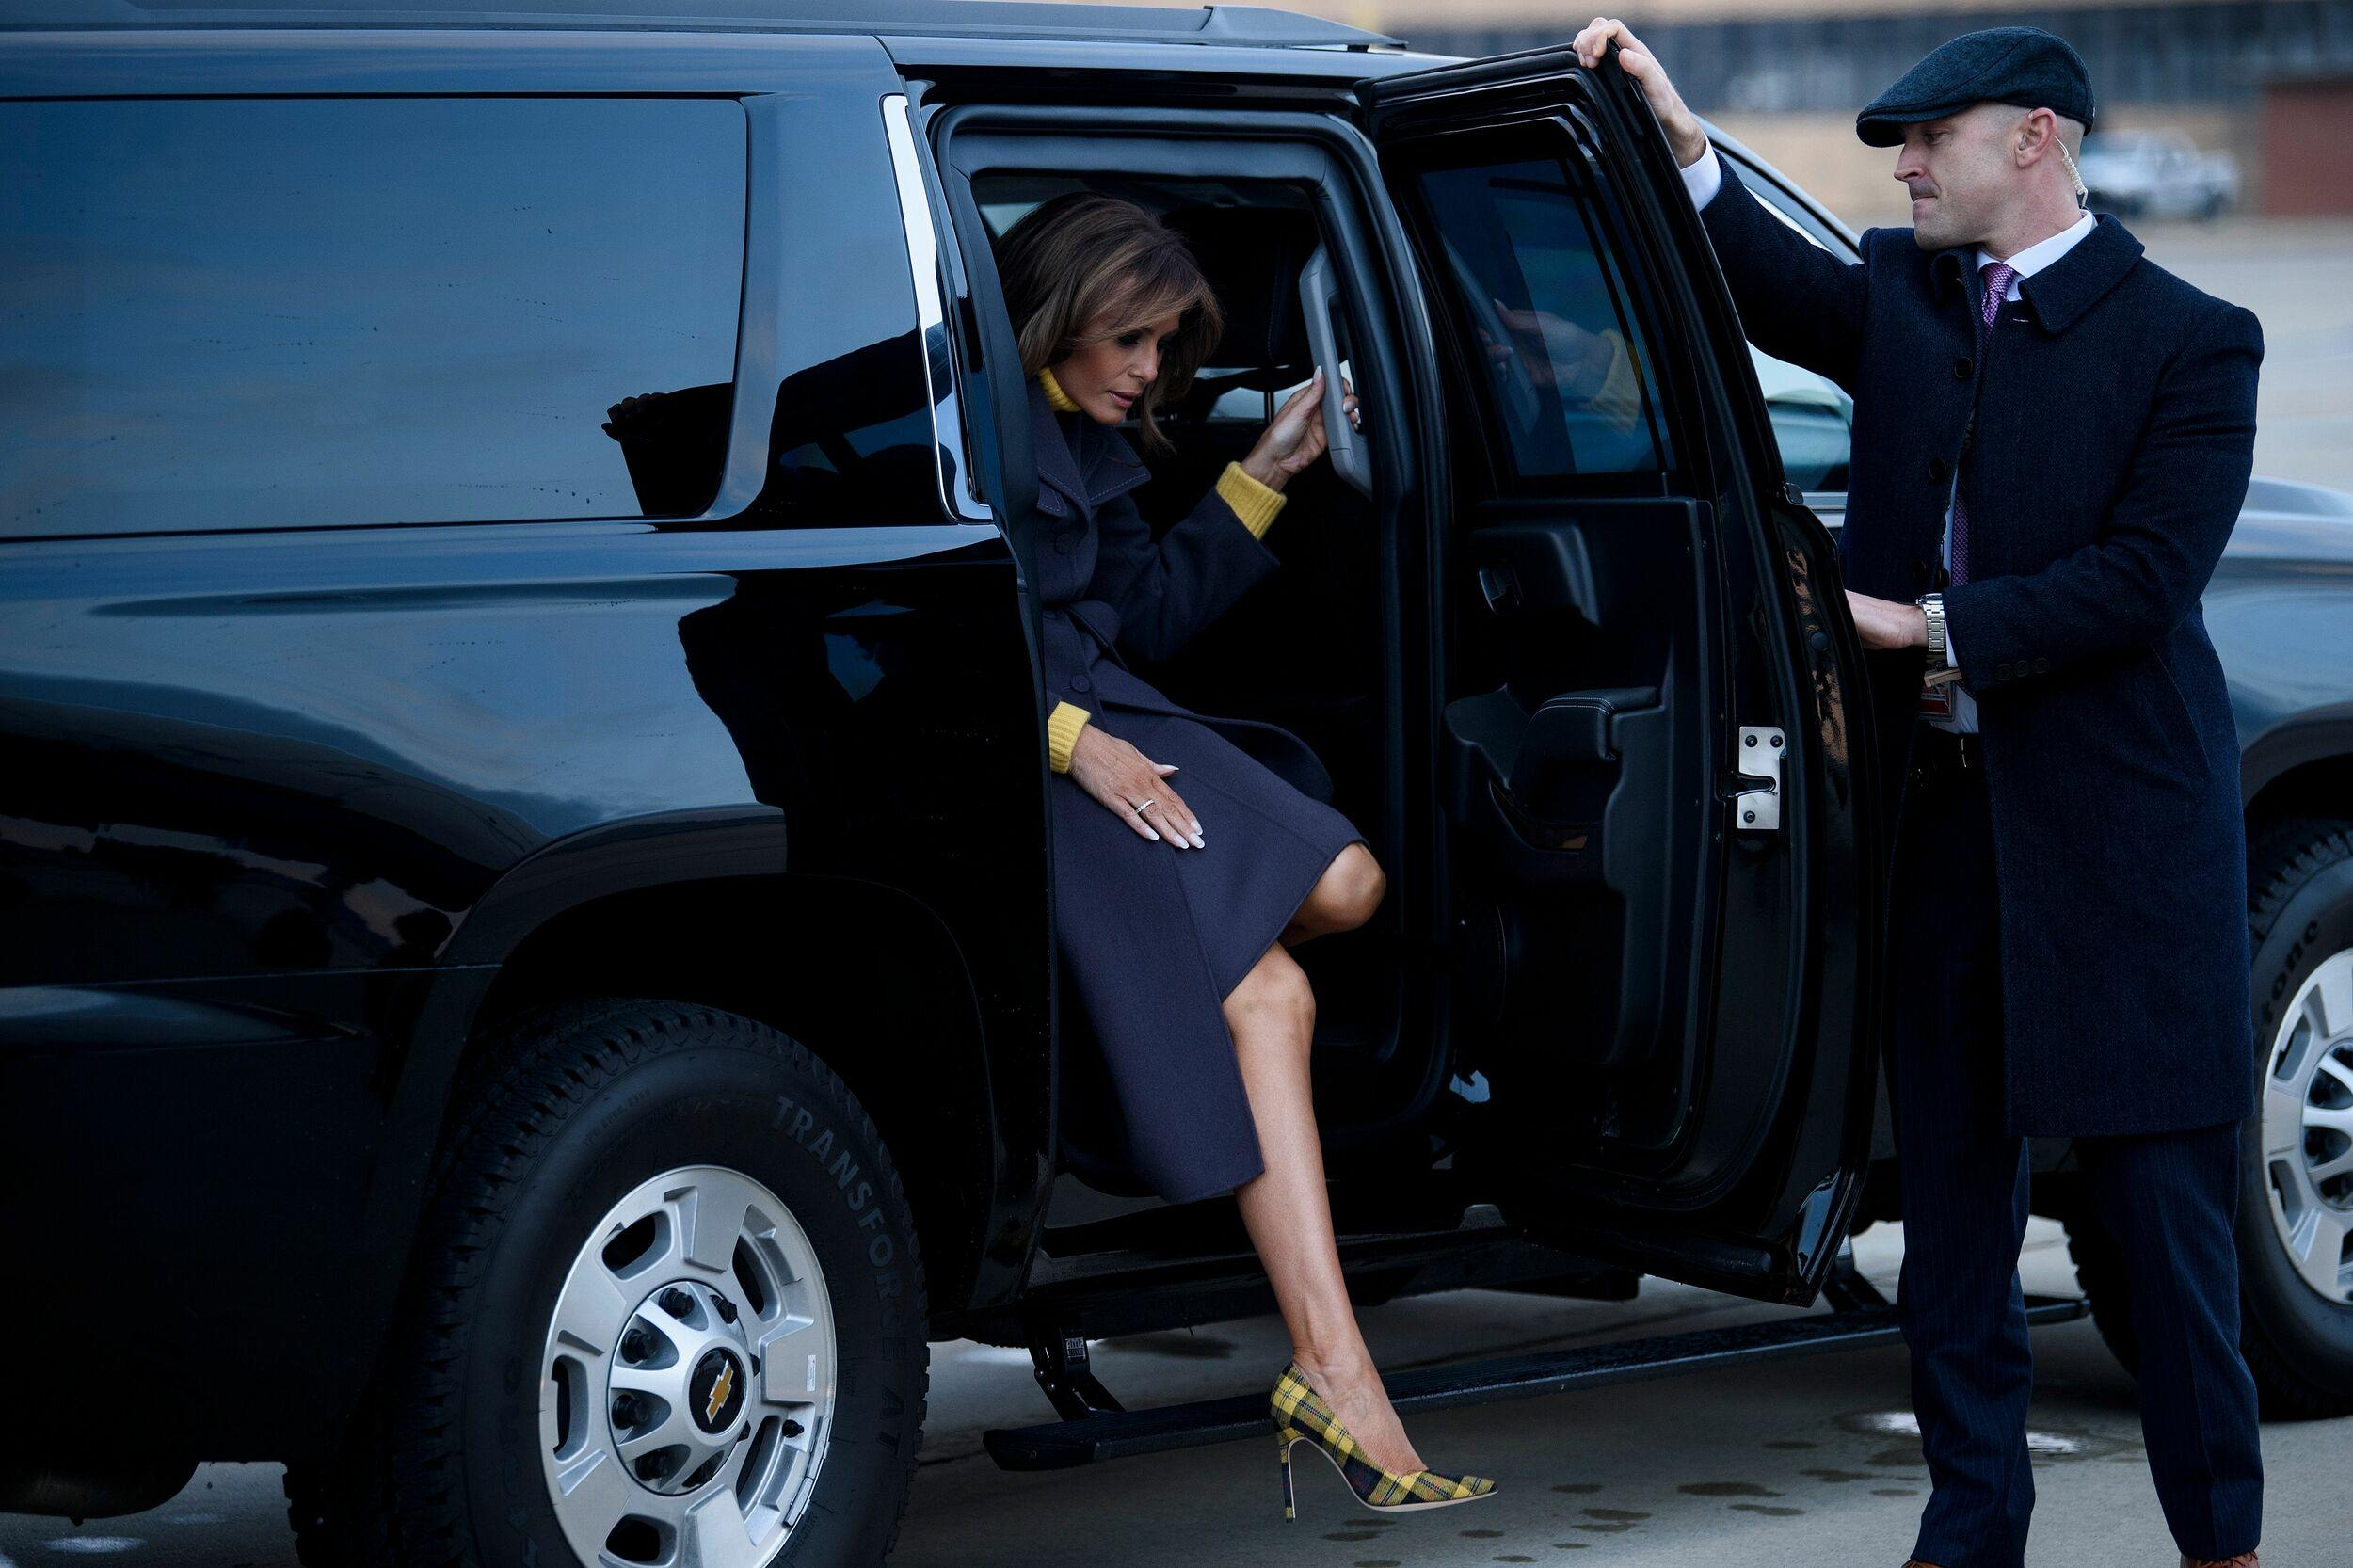 US First Lady Melania Trump arrives to board a plane at Andrews Air Force Base for a three state overnight trip March 4, 2019 in Maryland. - The First Lady travels to Oklahoma, Washington, and Nevada as part of her 'Be Best' tour. (Photo by Brendan Smialowski / AFP) (Photo credit should read BRENDAN SMIALOWSKI/AFP/Getty Images)